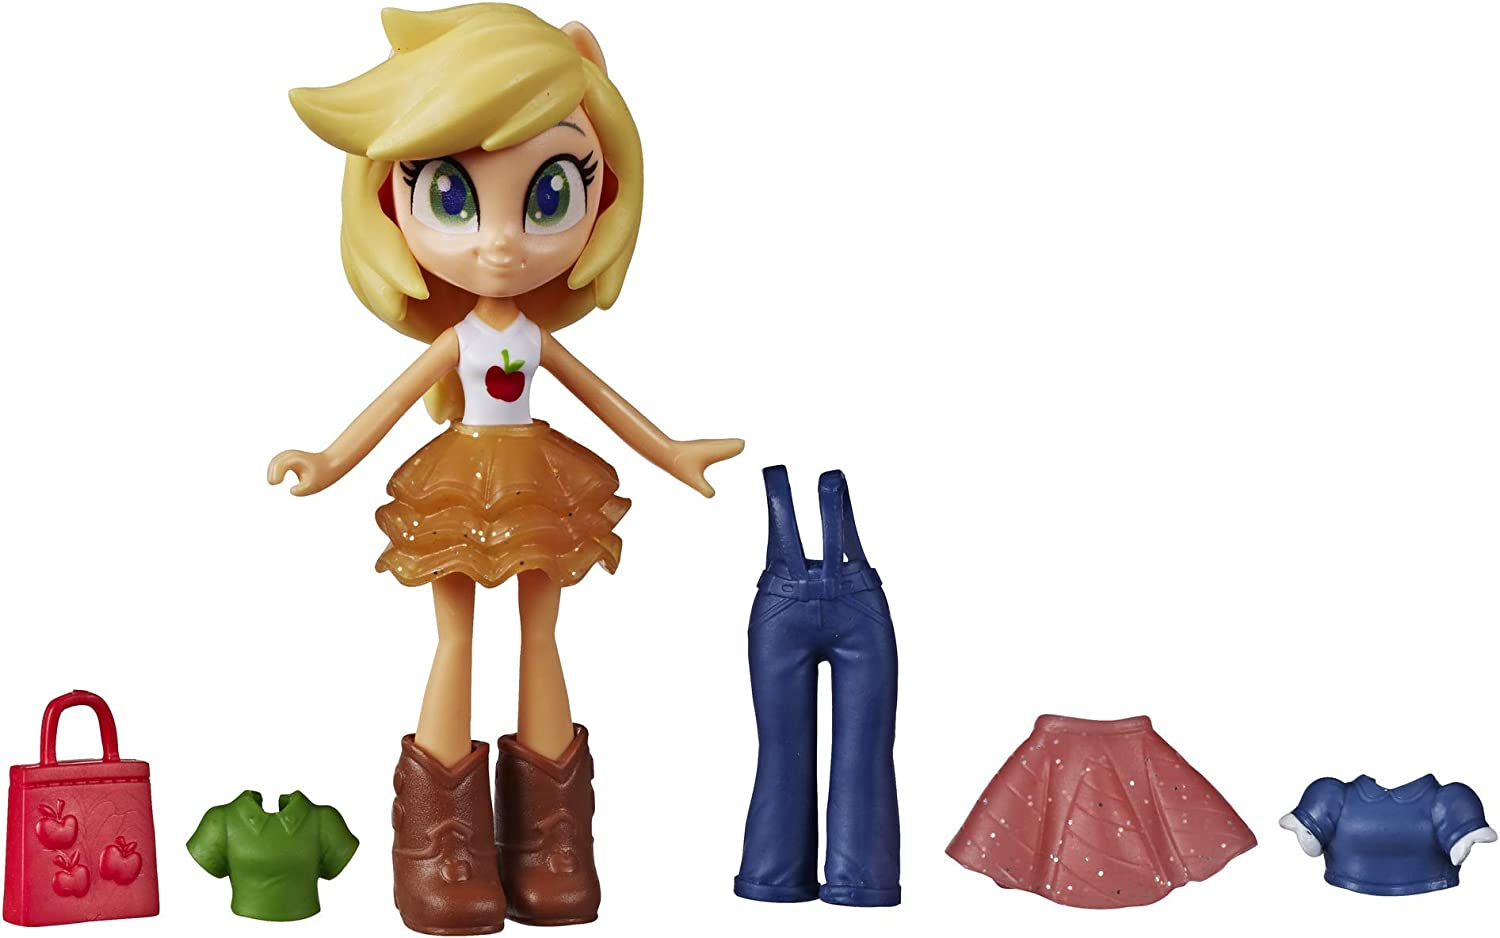 "My Little Pony Equestria Girls Fashion Squad Applejack, 3"" Potion Mini Doll Toy with Outfit & Surprise Accessories for Kids 5 & Up"